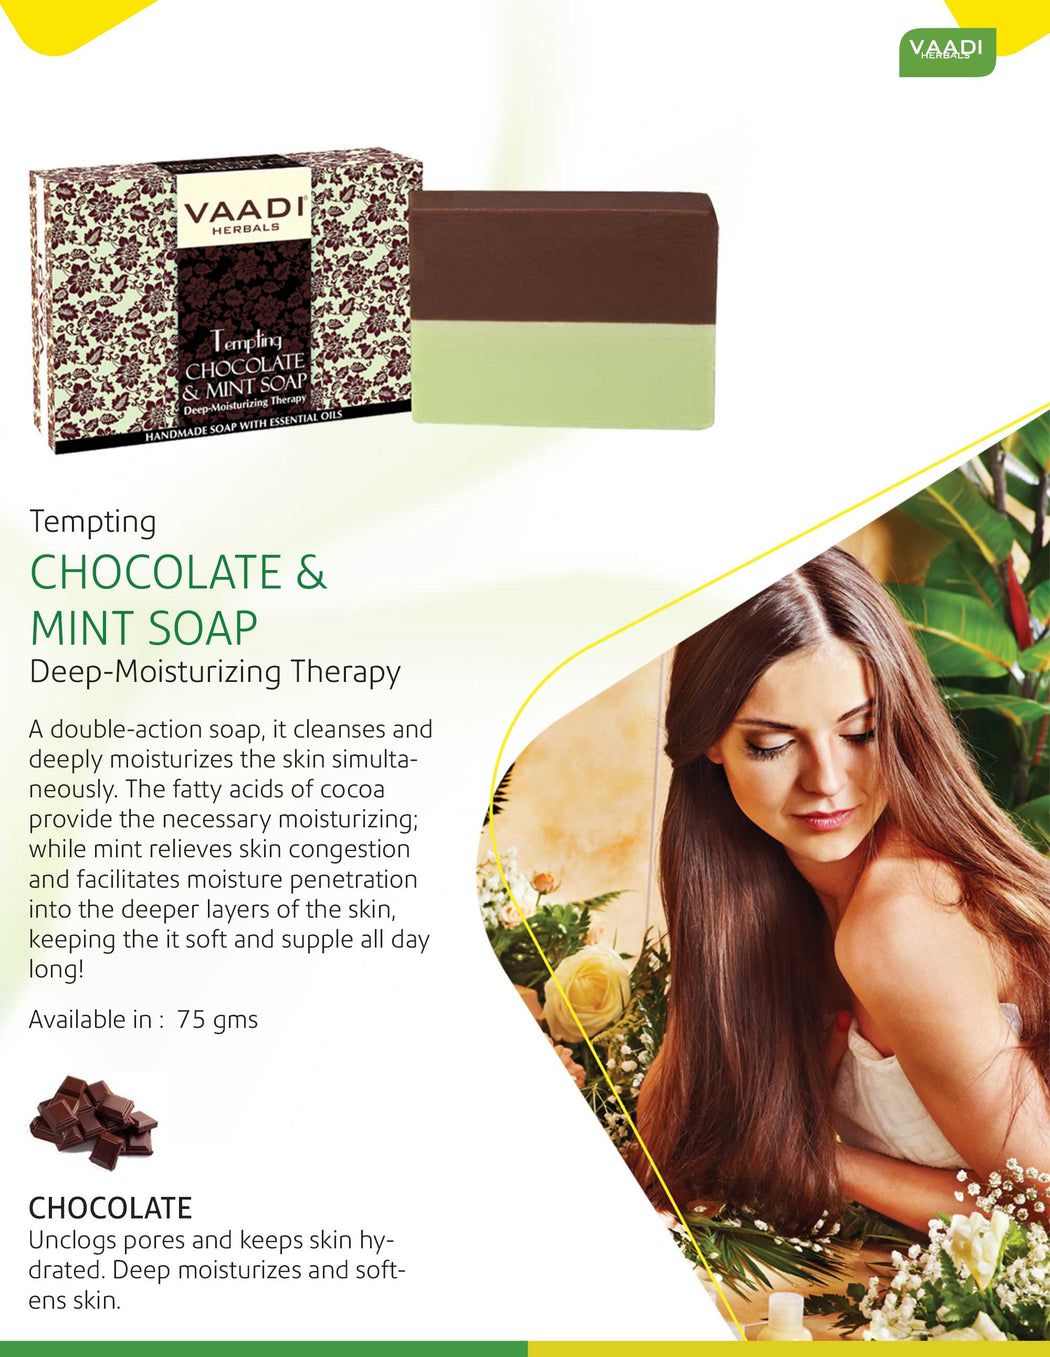 Pack of 12 Tempting Chocolate & Mint Soap - Deep Moisturising Therapy (75 gms x 12)